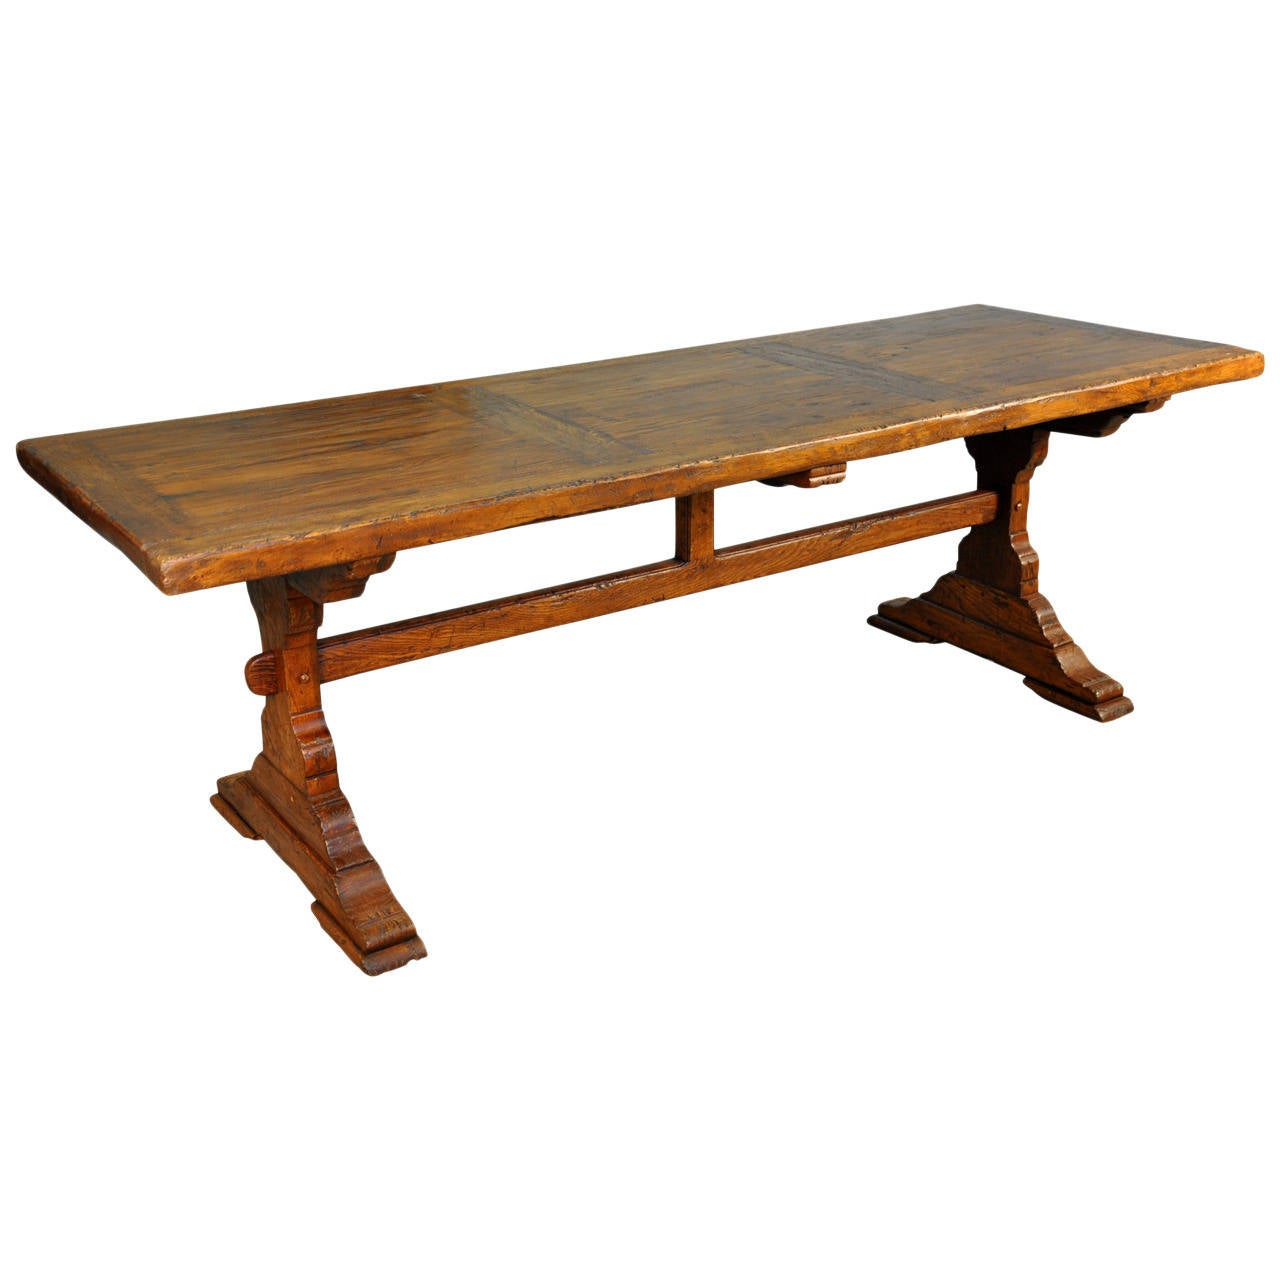 19th Century French Farm or Trestle Table in Walnut at 1stdibs